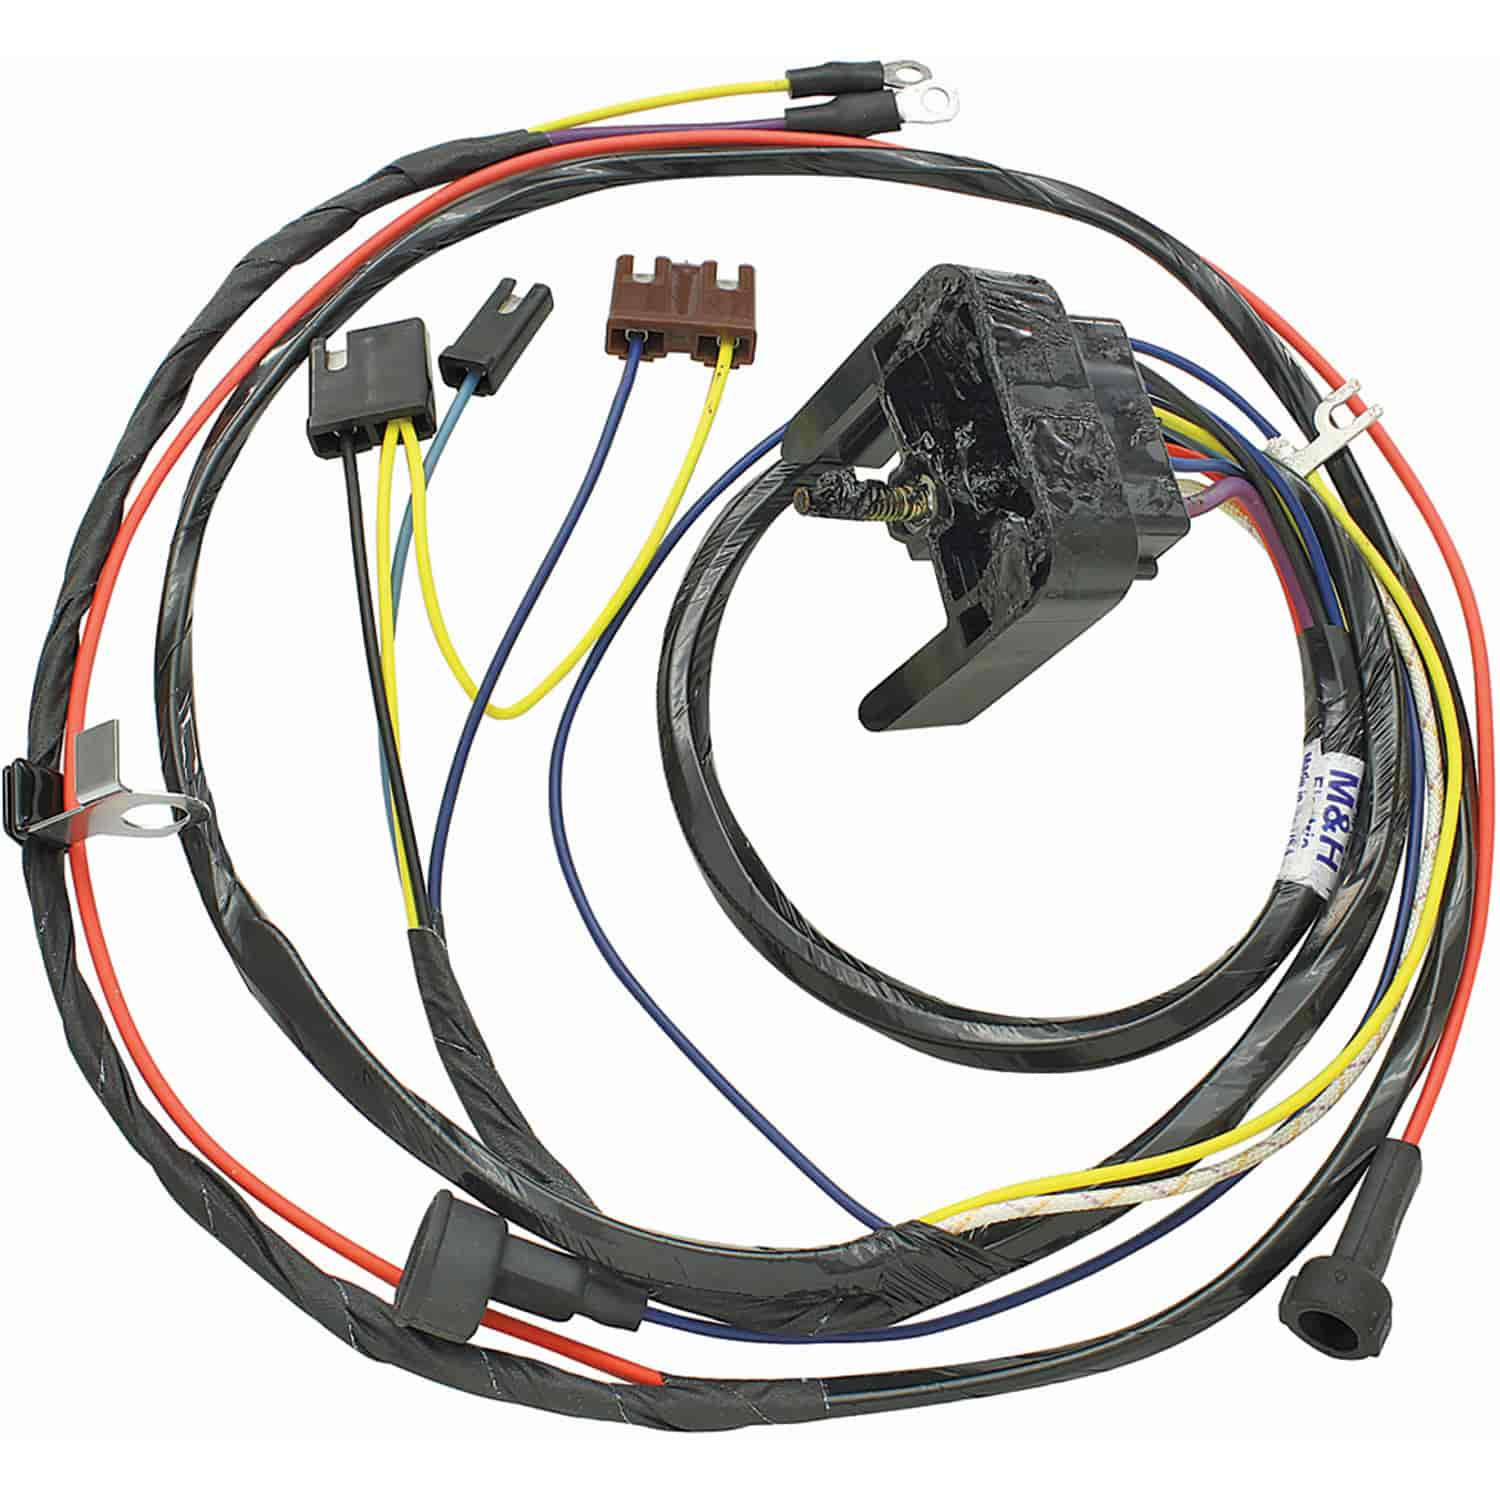 hight resolution of restoparts 12070 wiring harness engine 1968 69 chevelle 1971 chevelle wiring harness 67 chevelle wiring harness